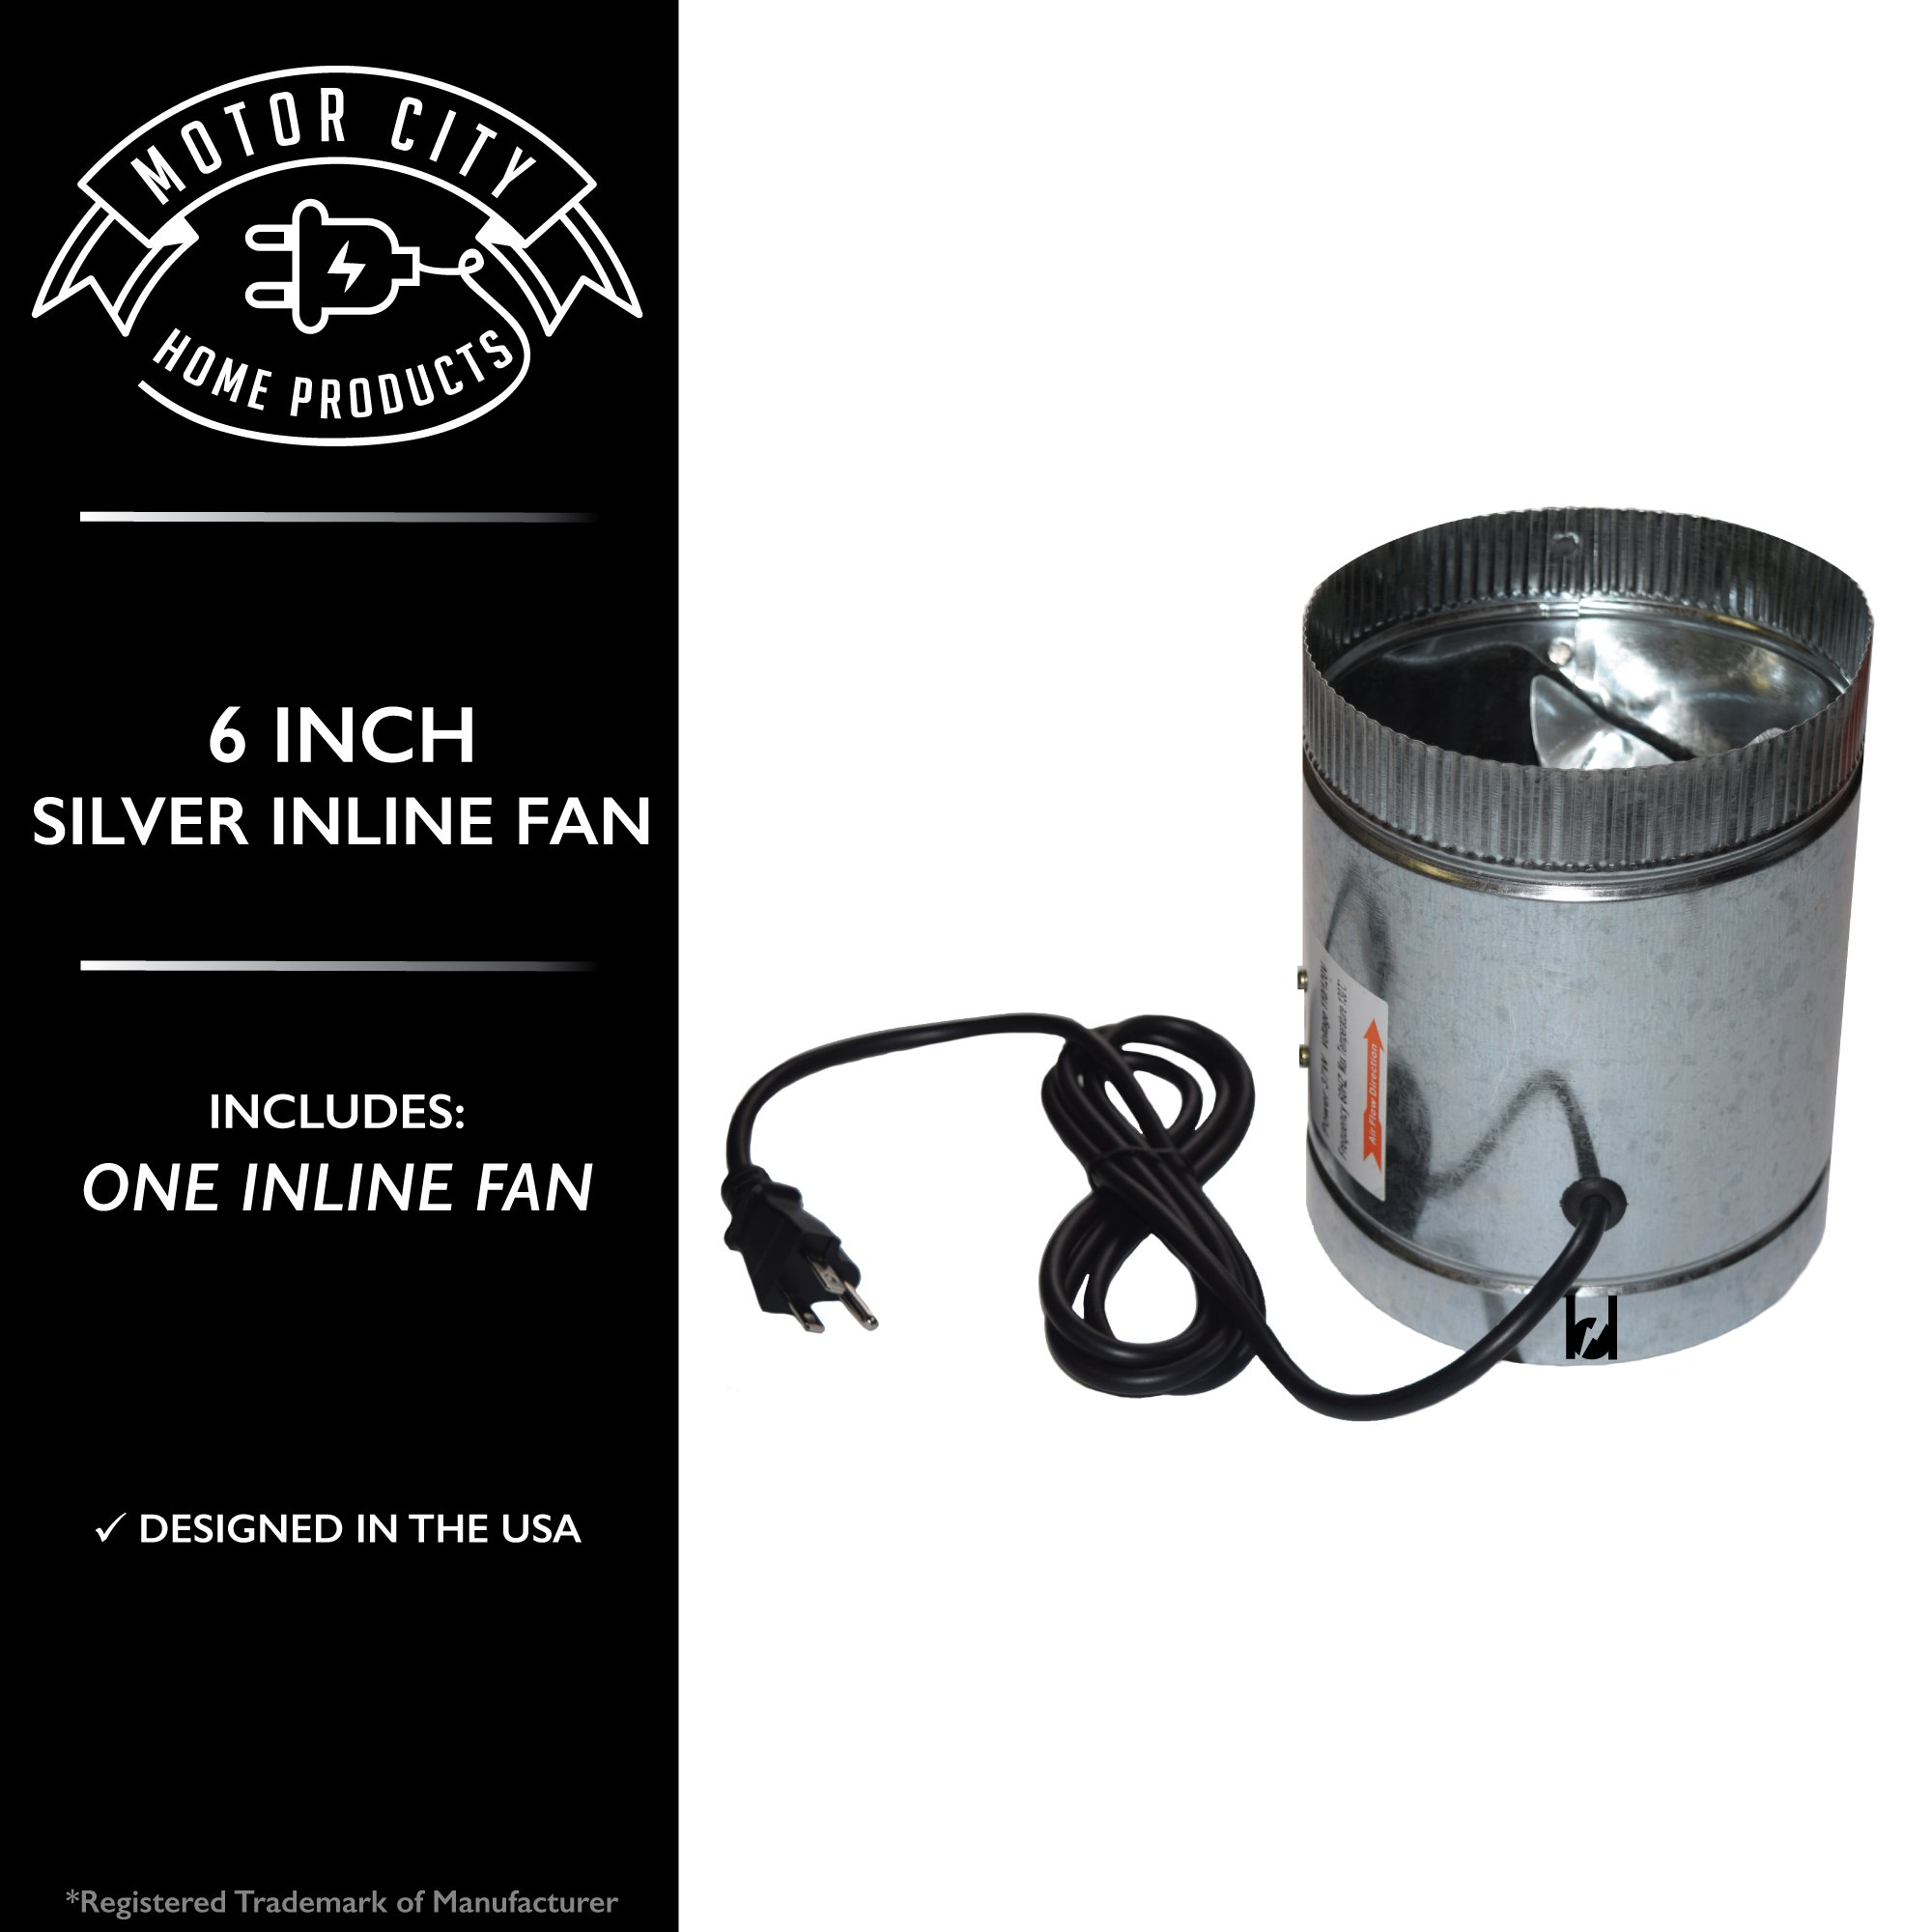 Motor City Home Products 6 Inch Silver Inline Fan for Odor Emission Control in Grow or Smoke Room # DF-6. A Brand Exclusive Offering. (1) by Motor City Home Products